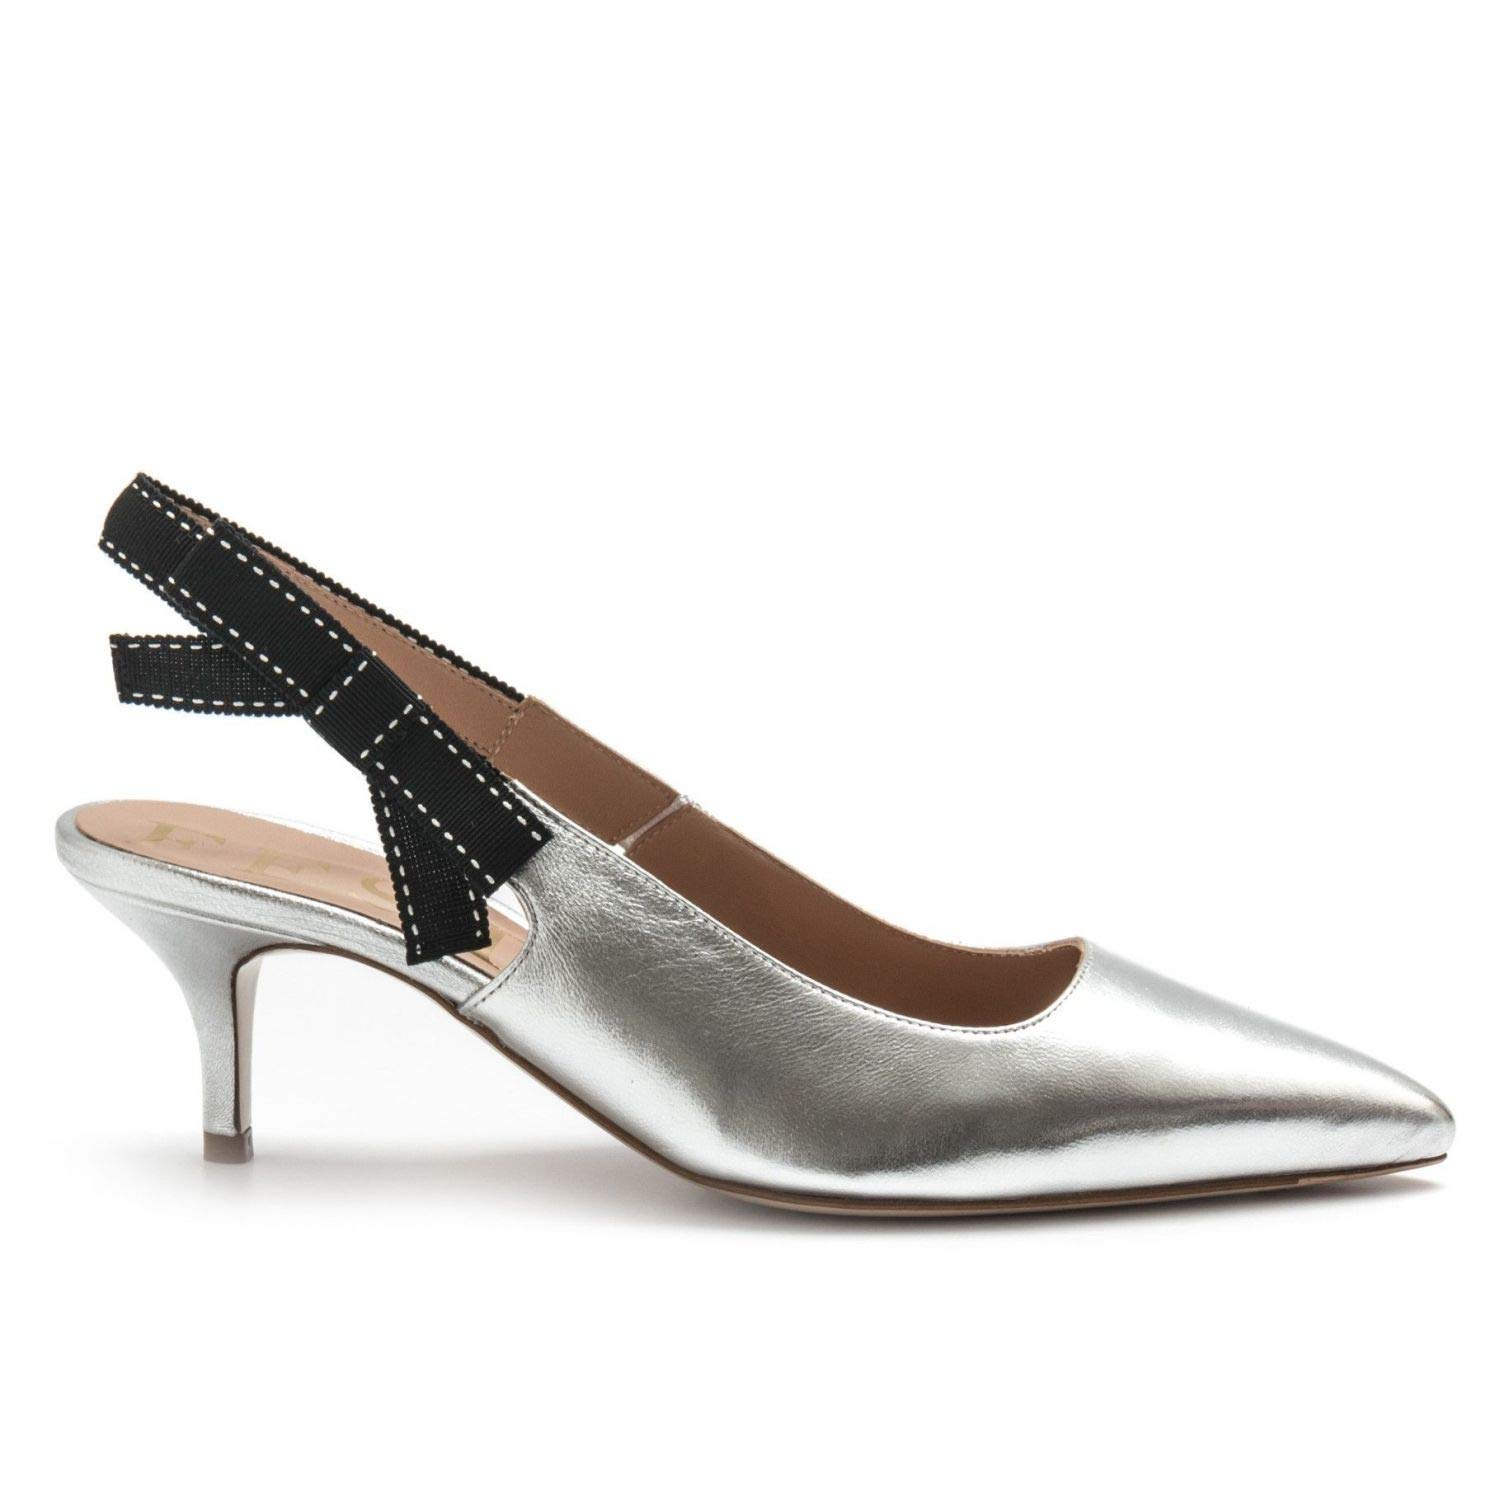 Argent Roberto Festa - Molly Sling Back in argent Leather - MOLLY2